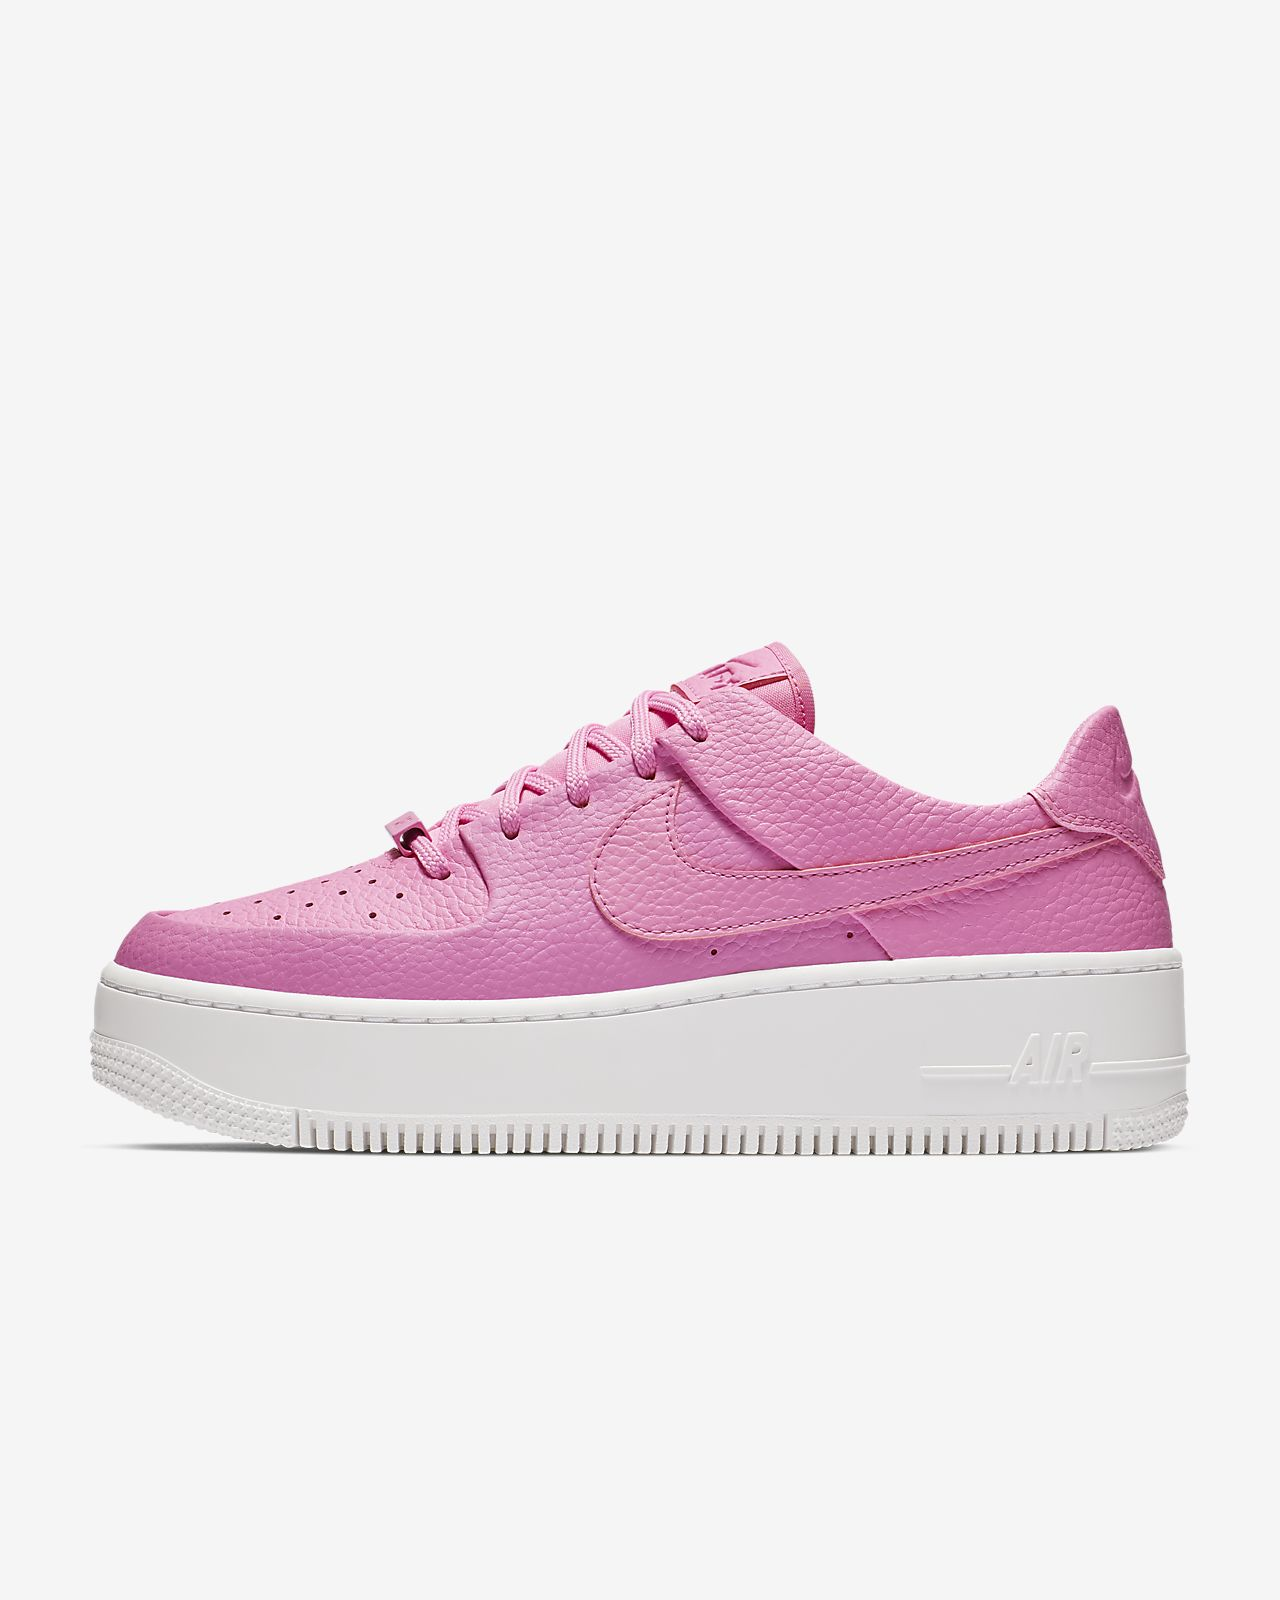 b25787571ea6 Nike Air Force 1 Sage Low Women s Shoe. Nike.com